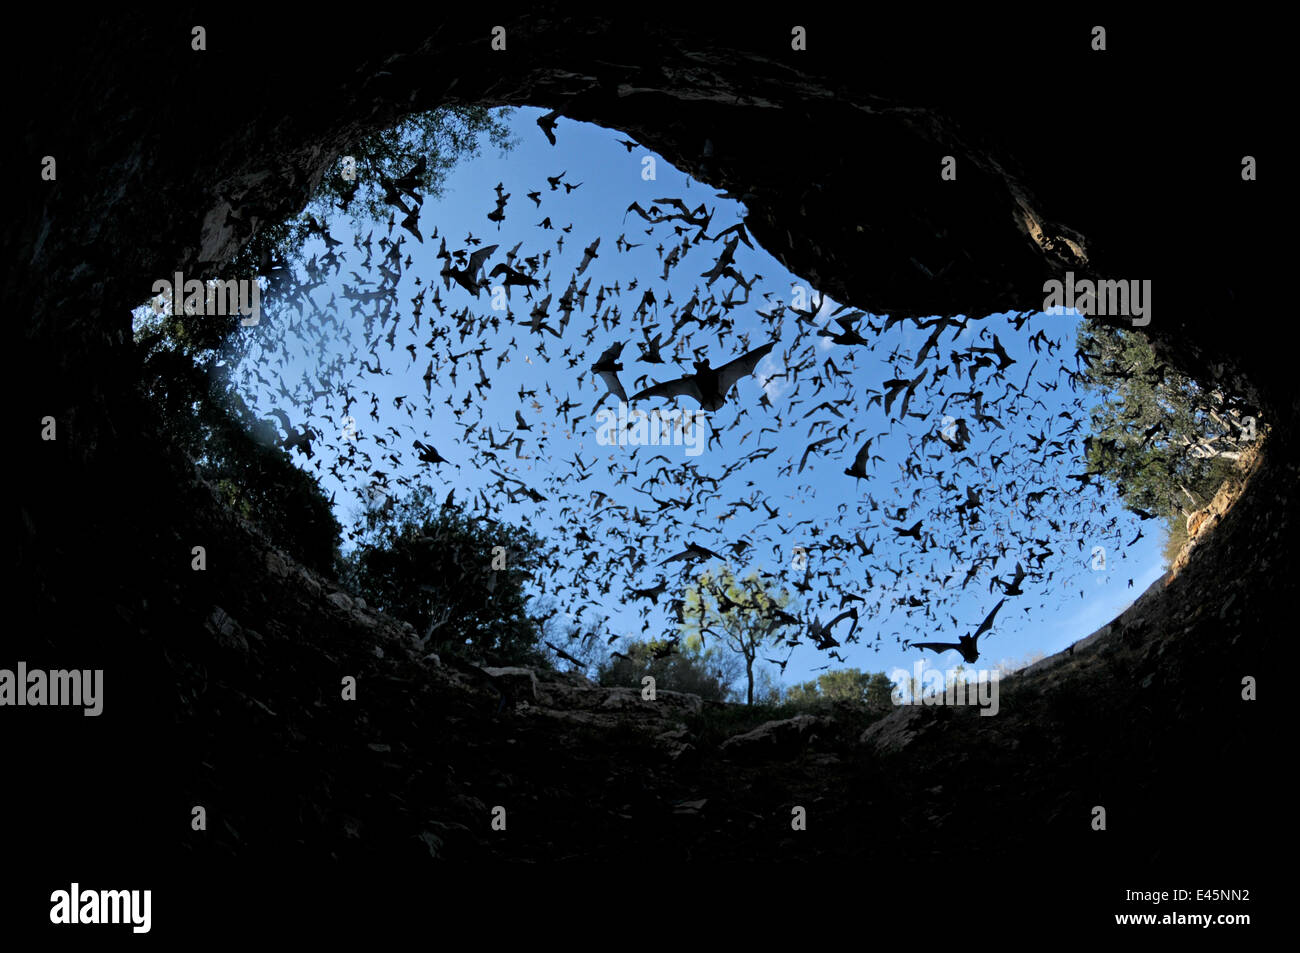 mexican free tailed bats stock photos u0026 mexican free tailed bats